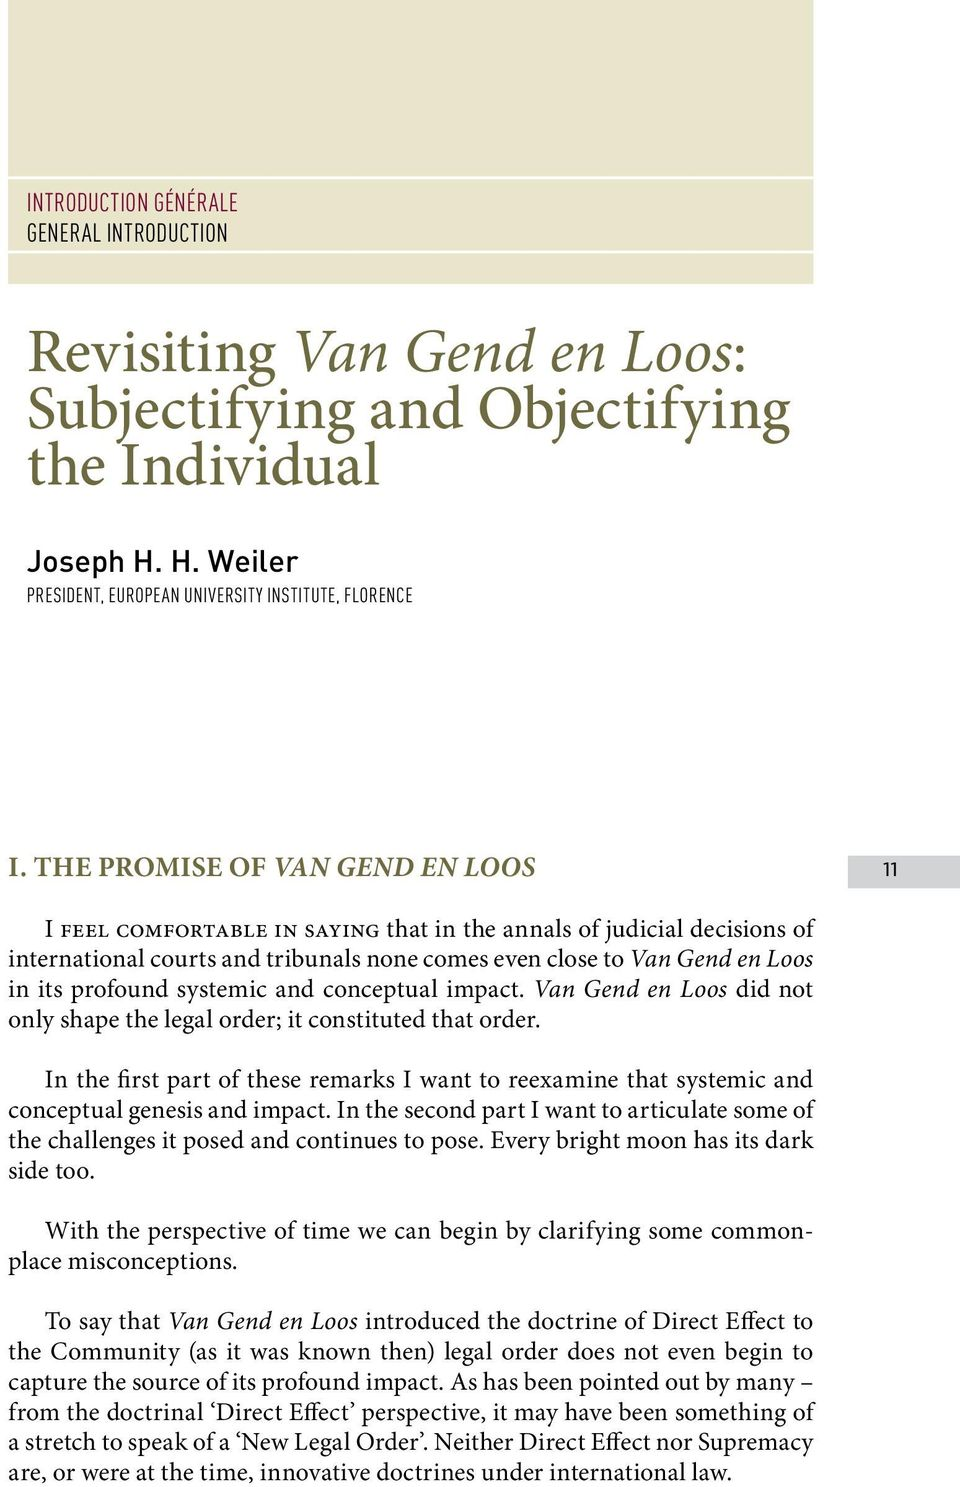 profound systemic and conceptual impact. Van Gend en Loos did not only shape the legal order; it constituted that order.